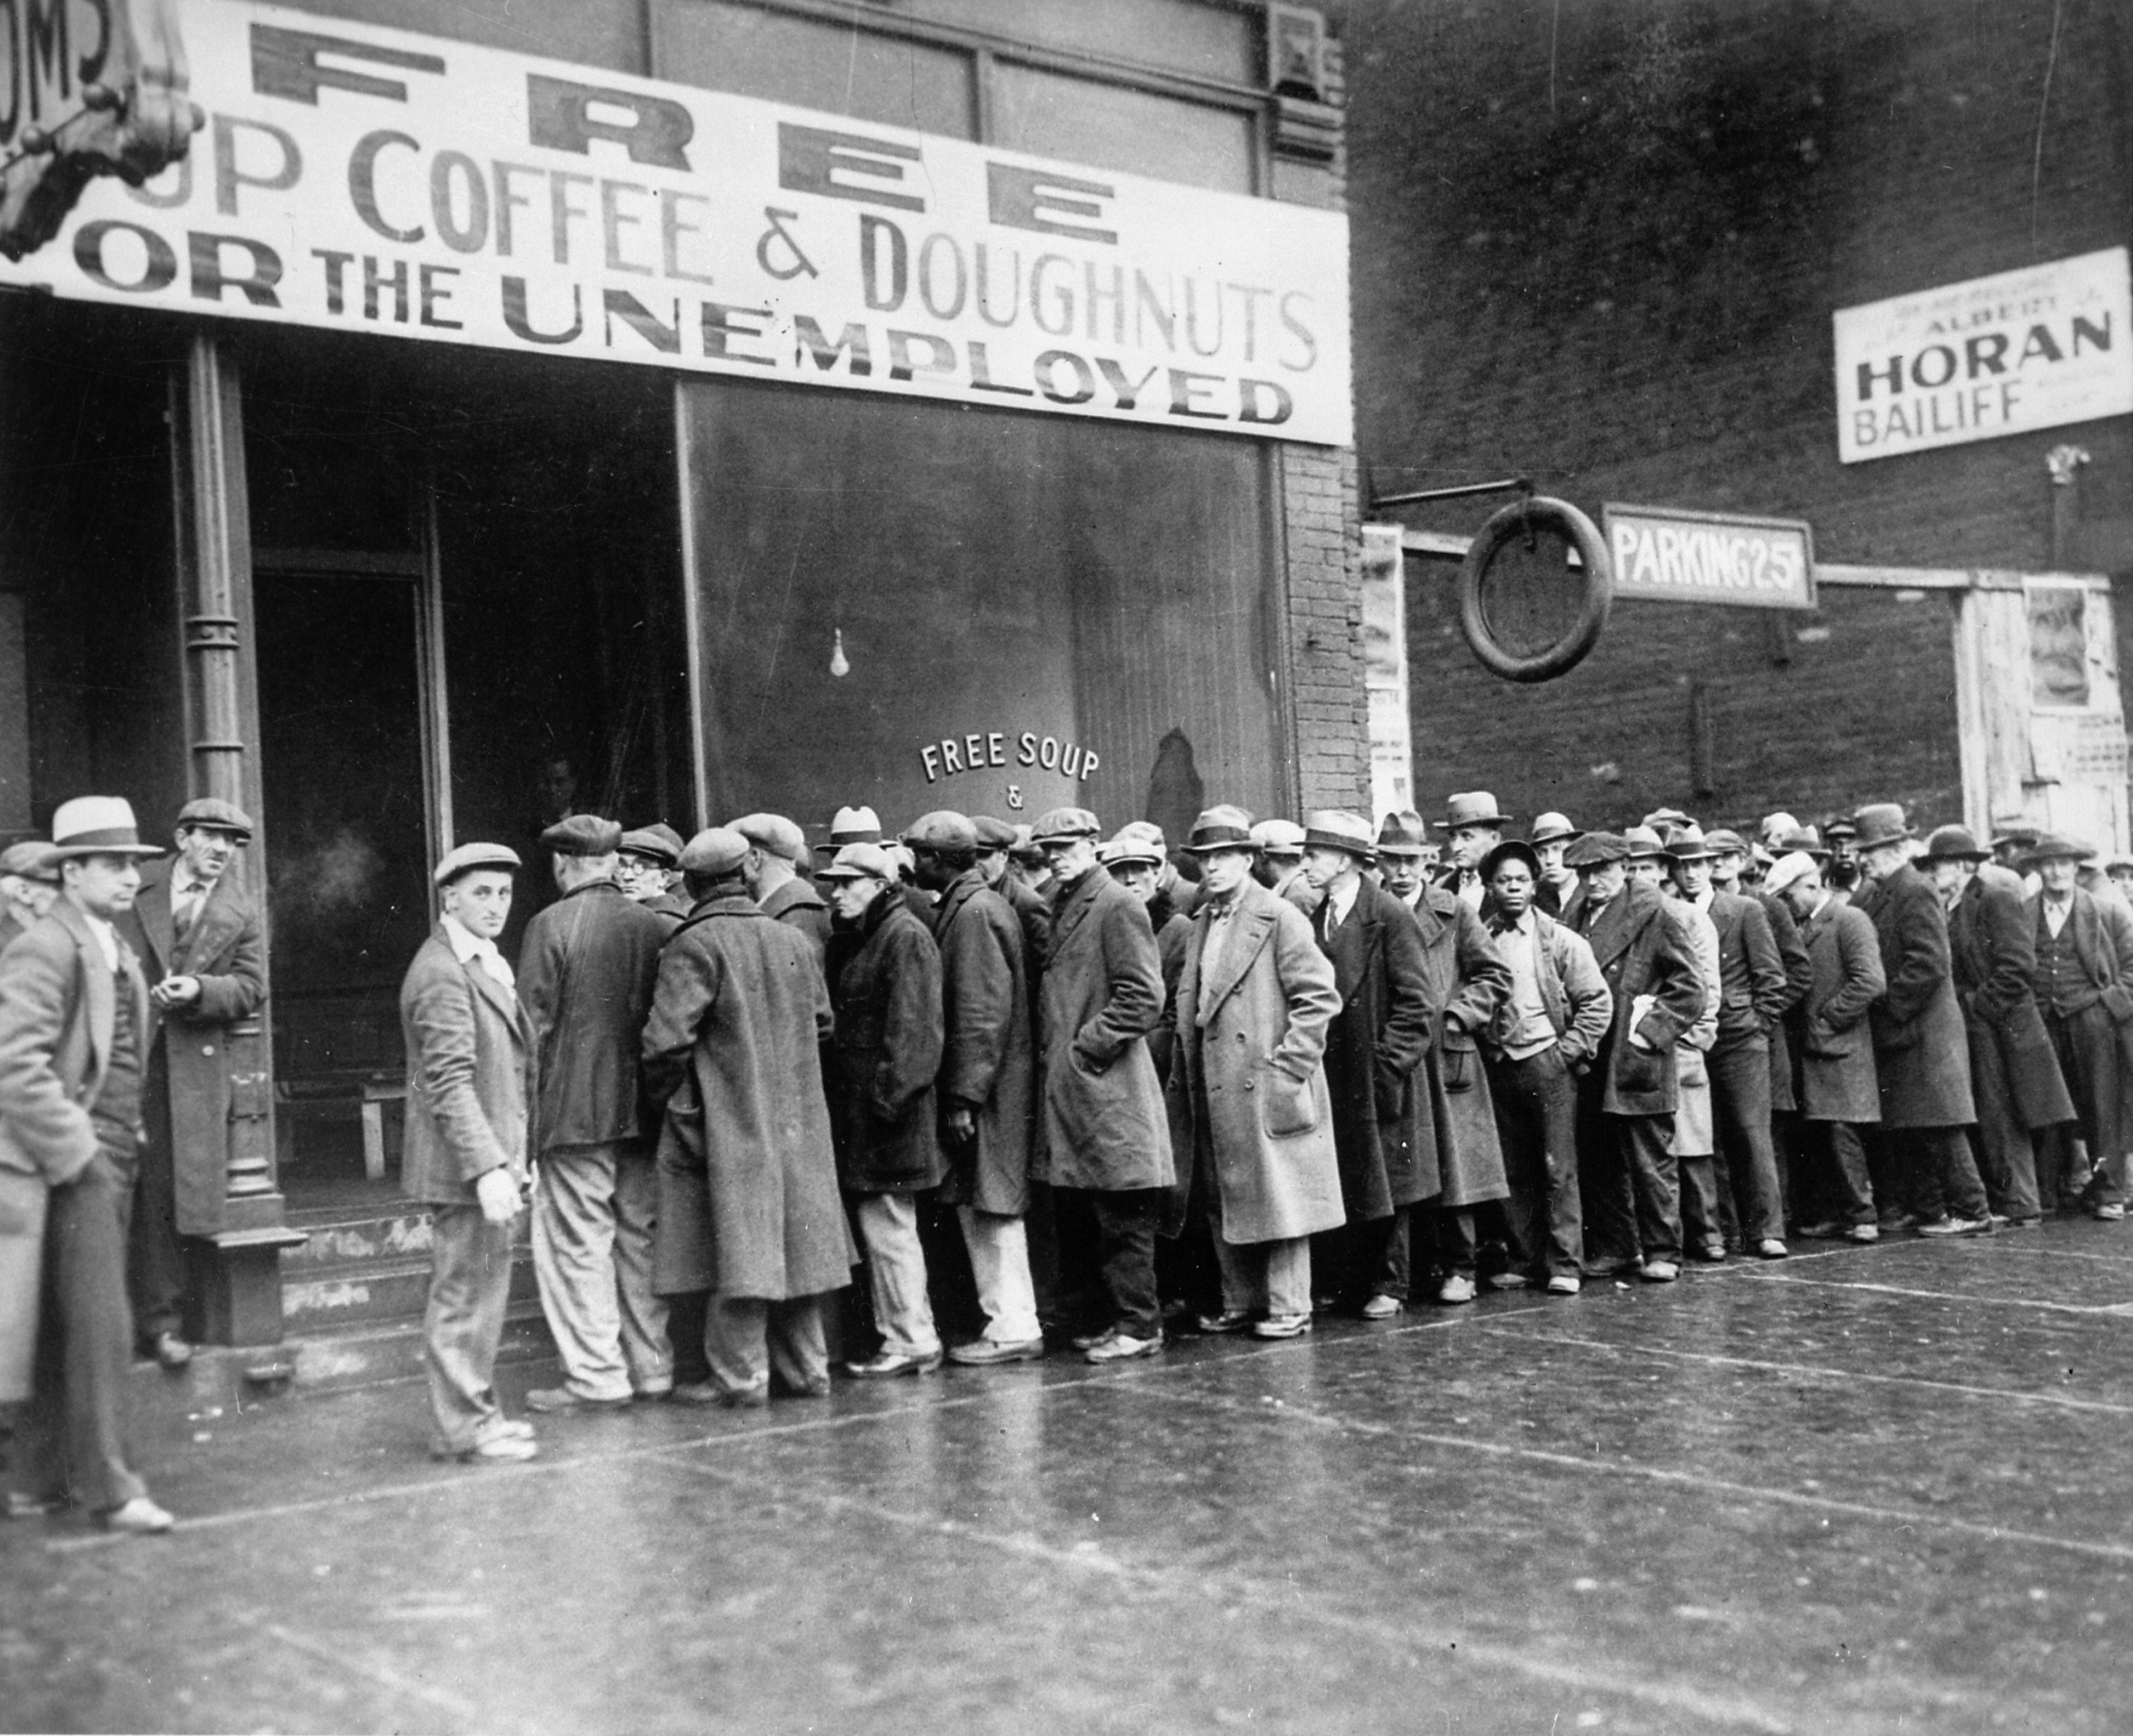 Soup kitchen queue in Chicago during the Great Depression.